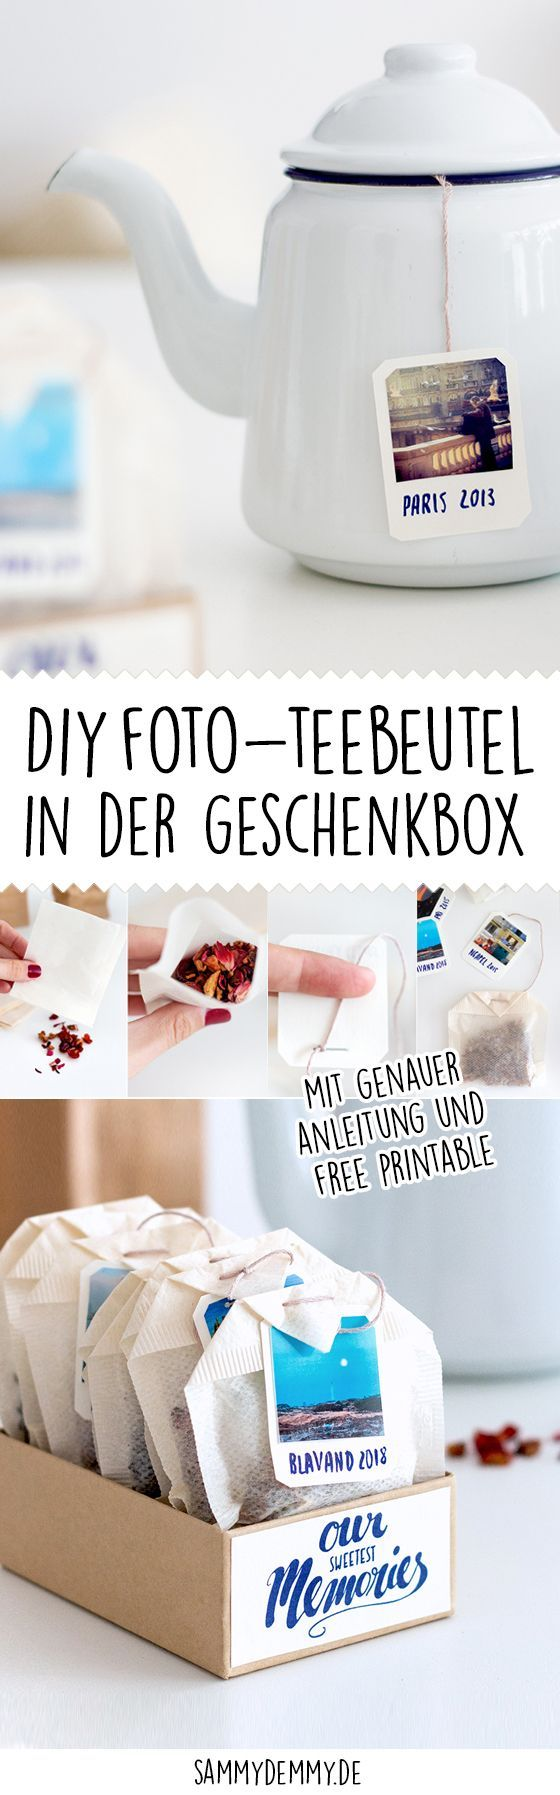 diy tasse und teebeutel als foto geschenk fotogeschenke. Black Bedroom Furniture Sets. Home Design Ideas